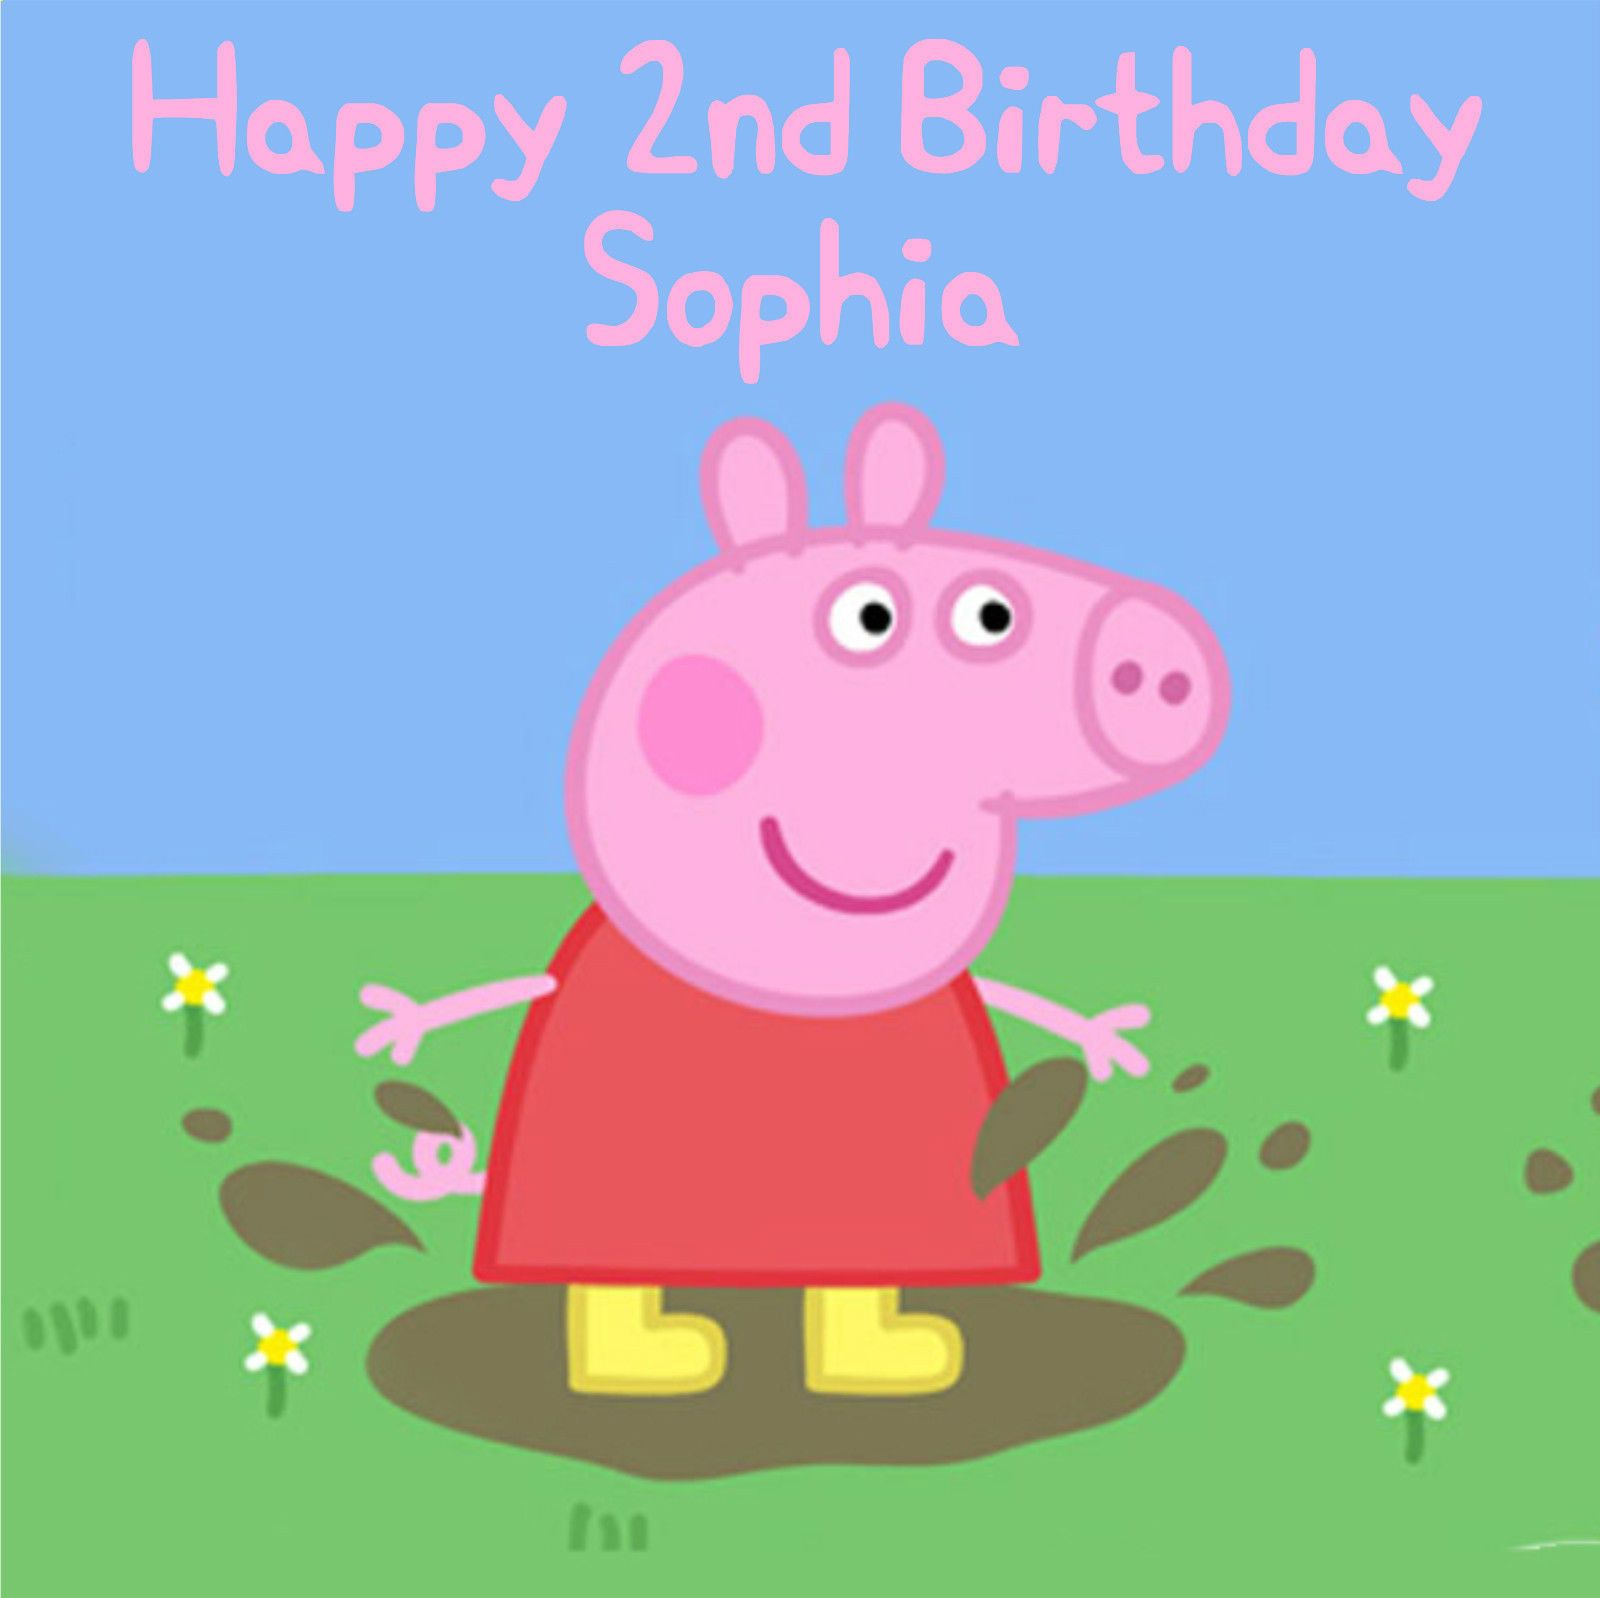 Peppa Pig Square Edible Birthday Cake Topper Decoration Rice Paper Or Icing Sheet 8 179 P